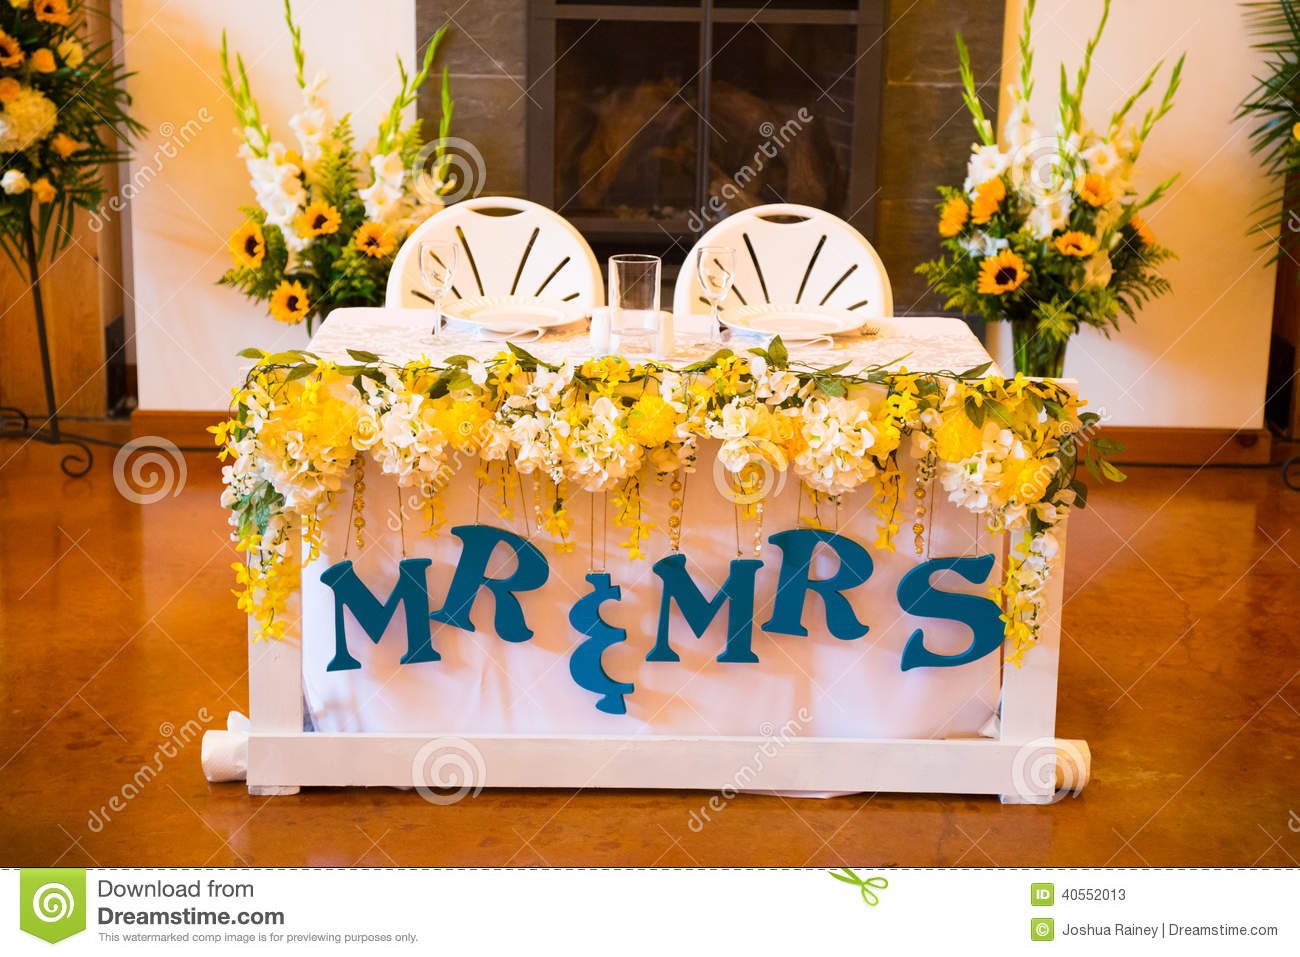 Mr and mrs bride and groom wedding table stock image image of mr and mrs bride and groom wedding table event weddings junglespirit